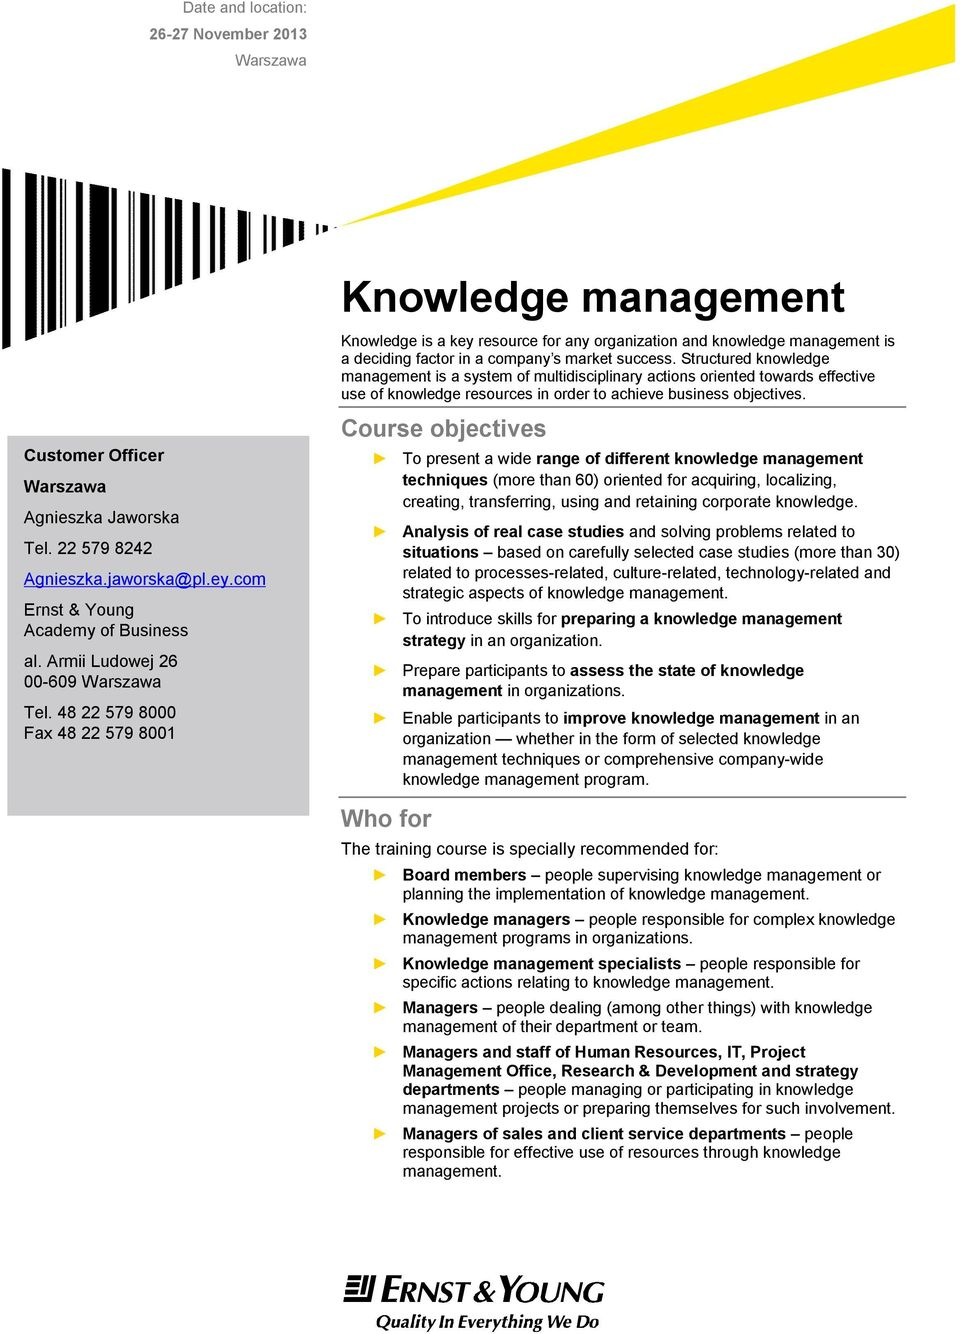 Structured knowledge management is a system of multidisciplinary actions oriented towards effective use of knowledge resources in order to achieve business objectives.